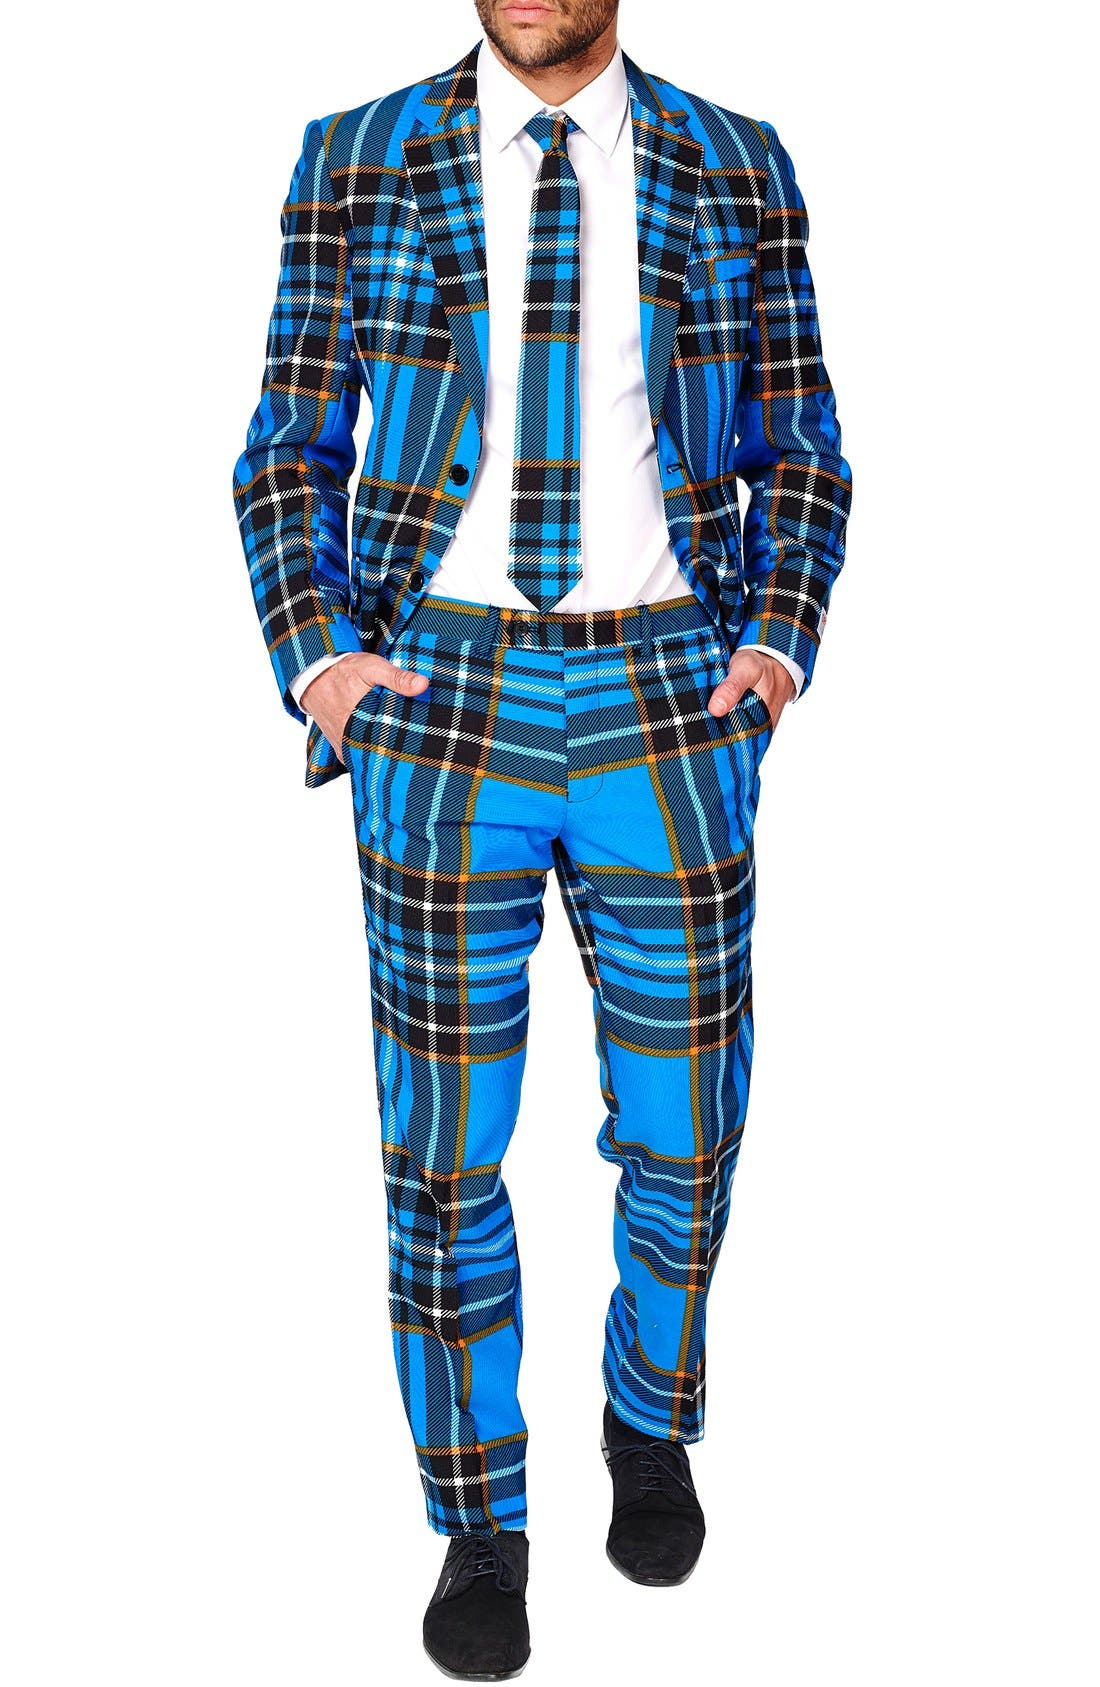 Alternate Image 1 Selected - OppoSuits 'Braveheart' Trim Fit Suit with Tie